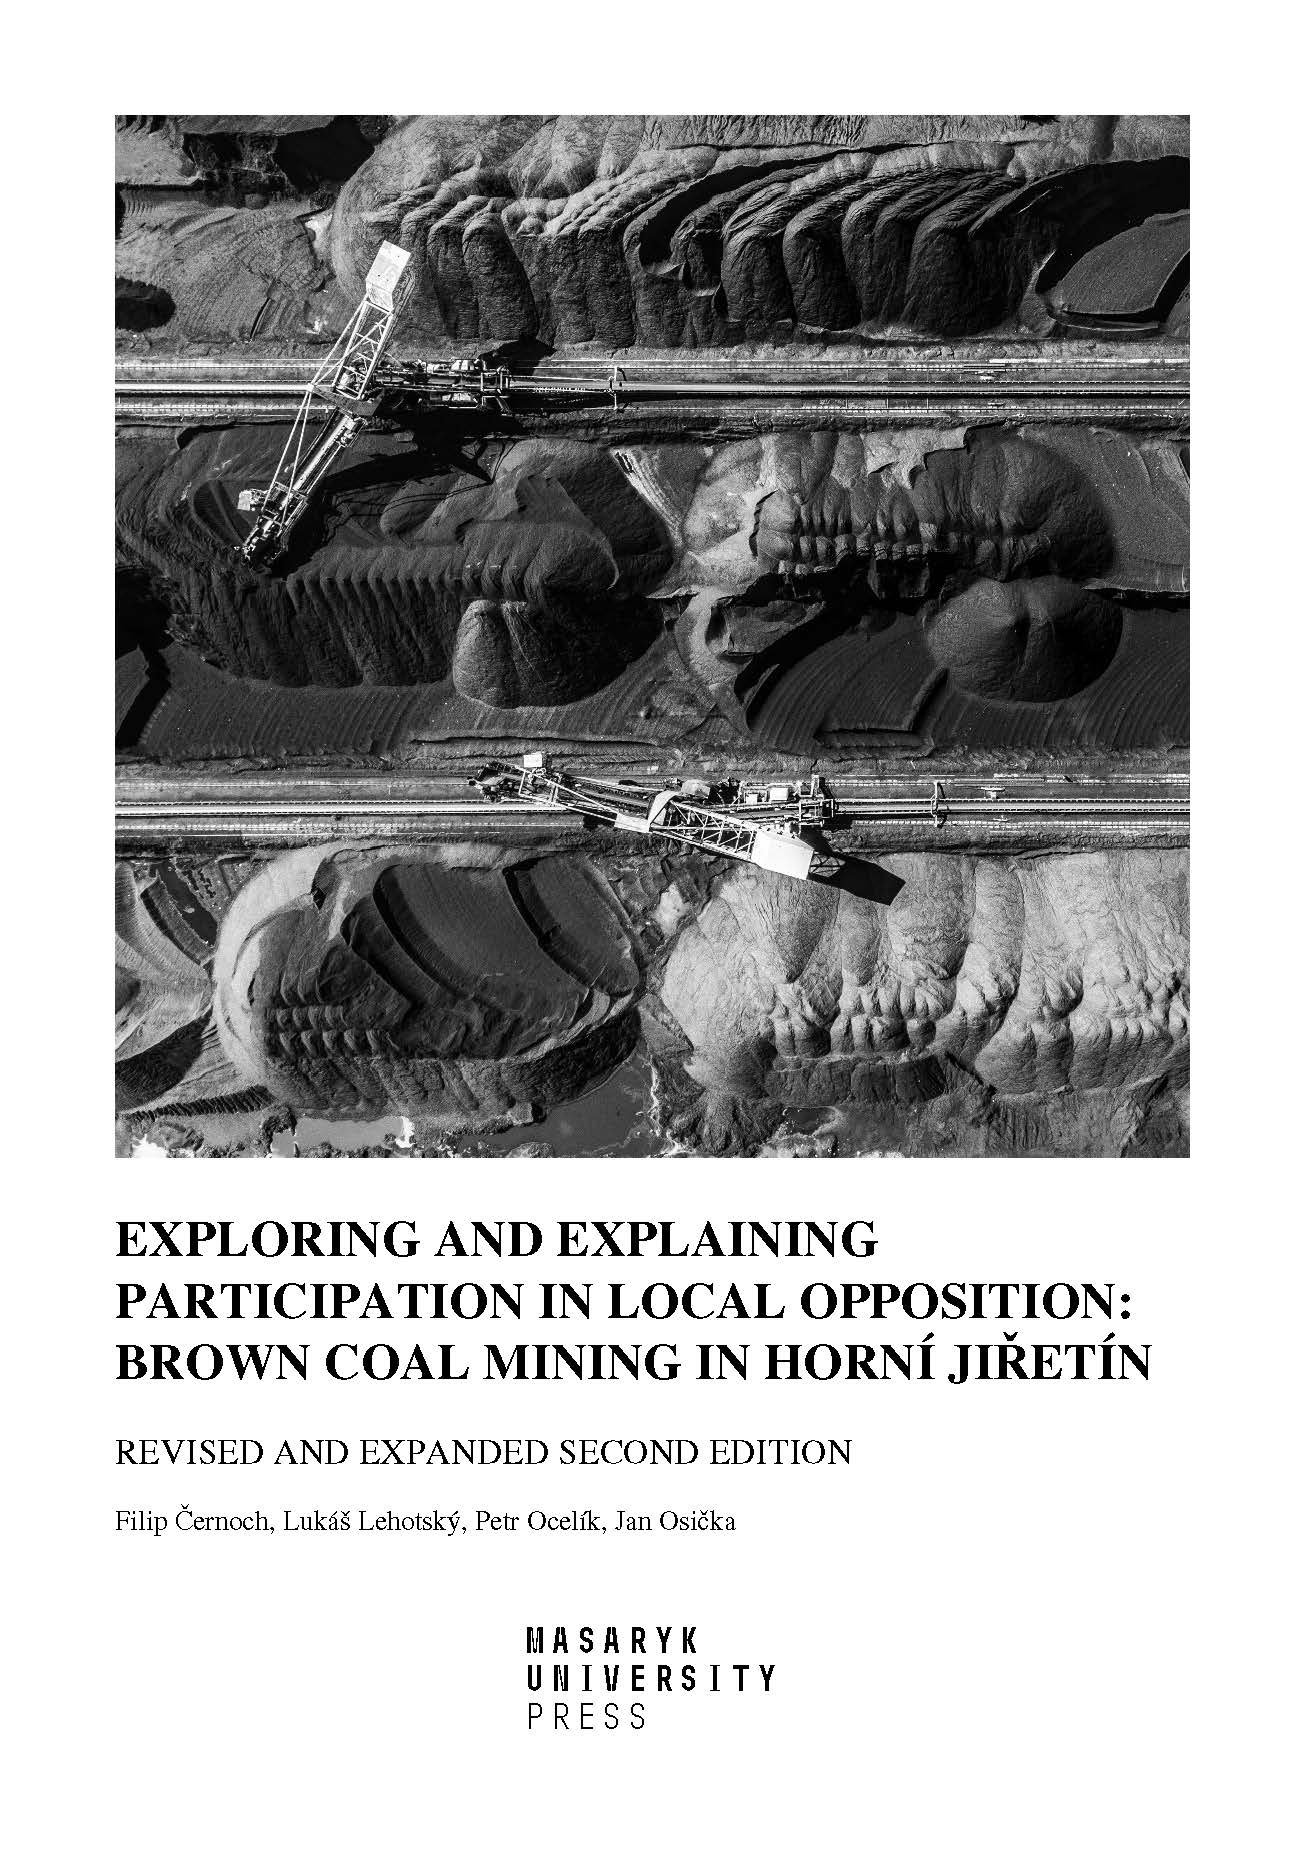 Obálka pro Exploring and explaining participation in local opposition: brown coal mining in Horní Jiřetín. Revised and expanded second edition